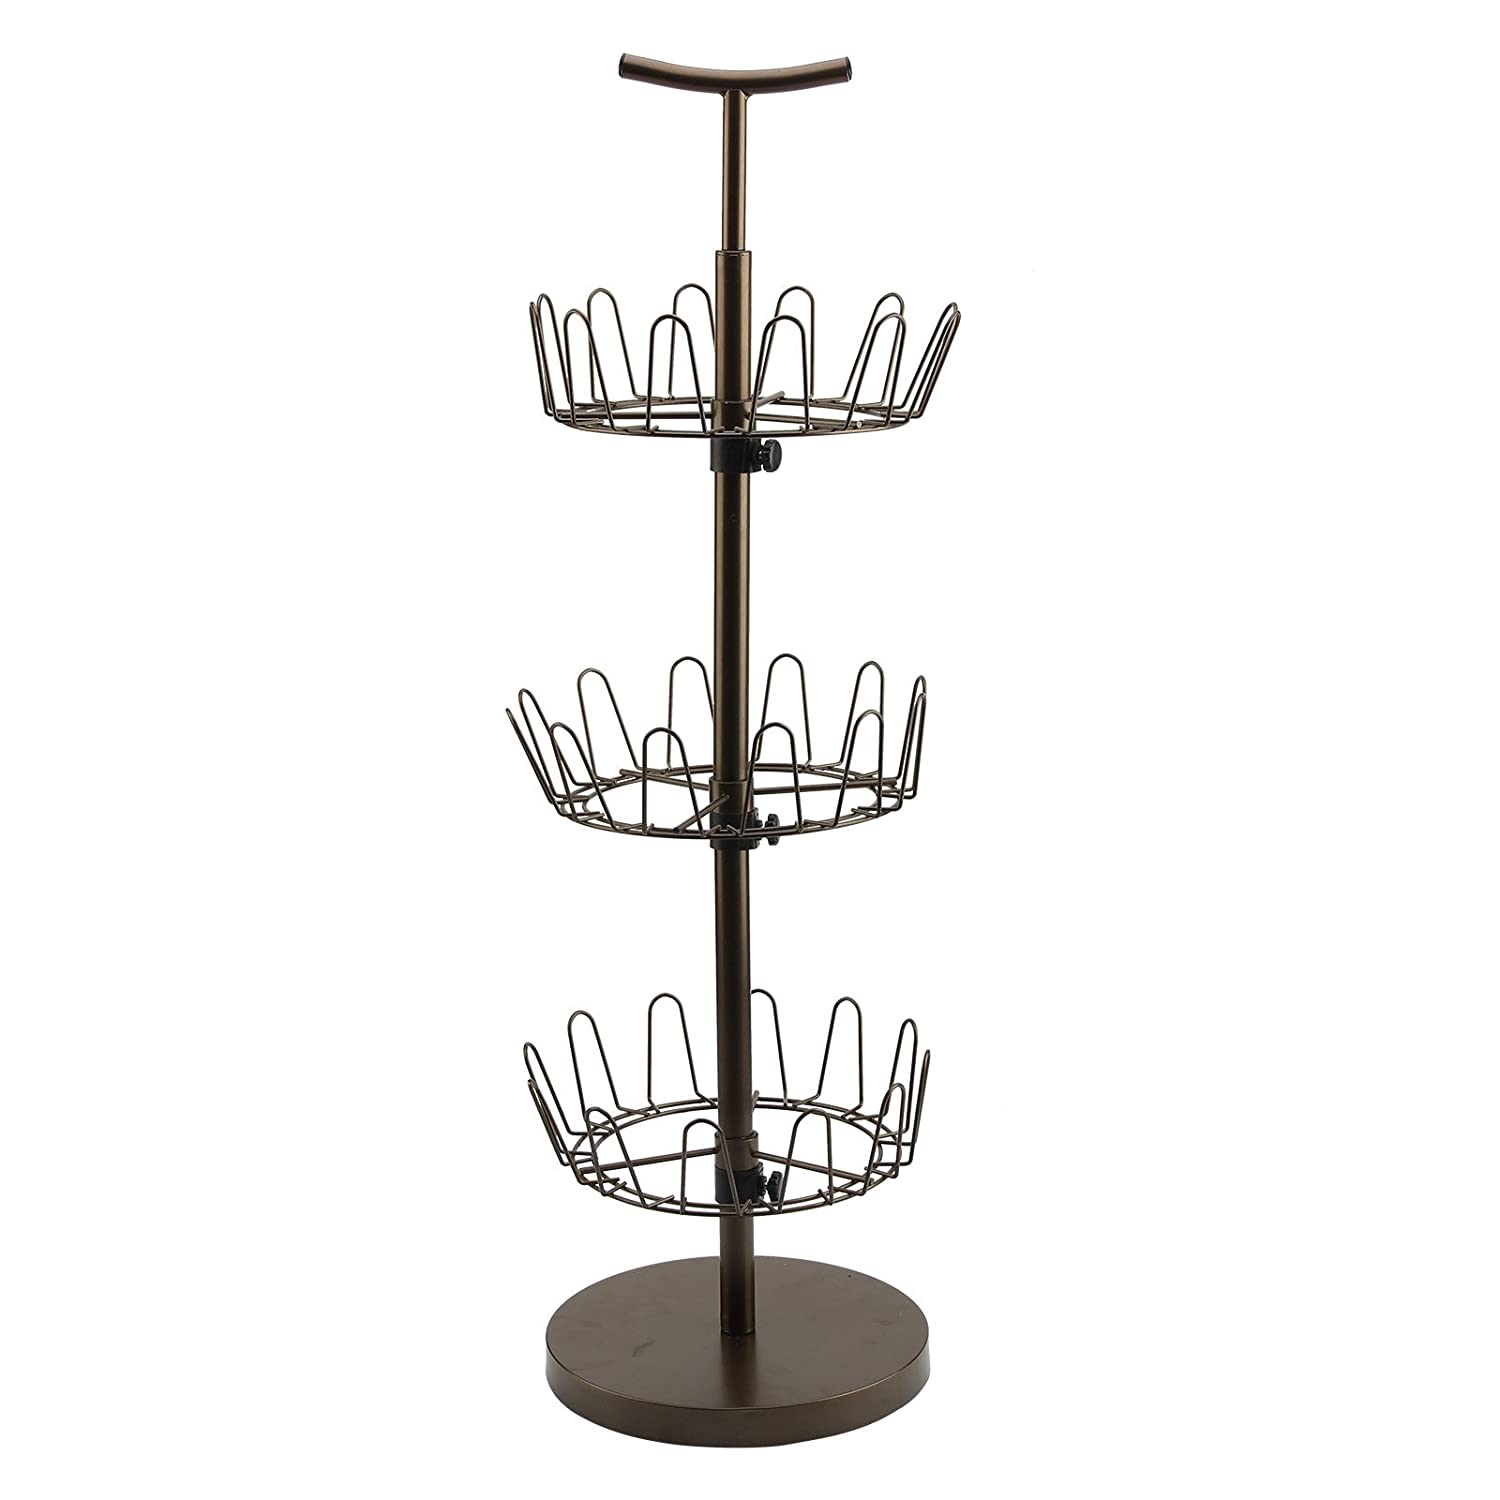 AllRight 3-Tier Heavy Duty Revolving Rotating Shoe Rack Organiser for up to 18 Pairs Shoes oem